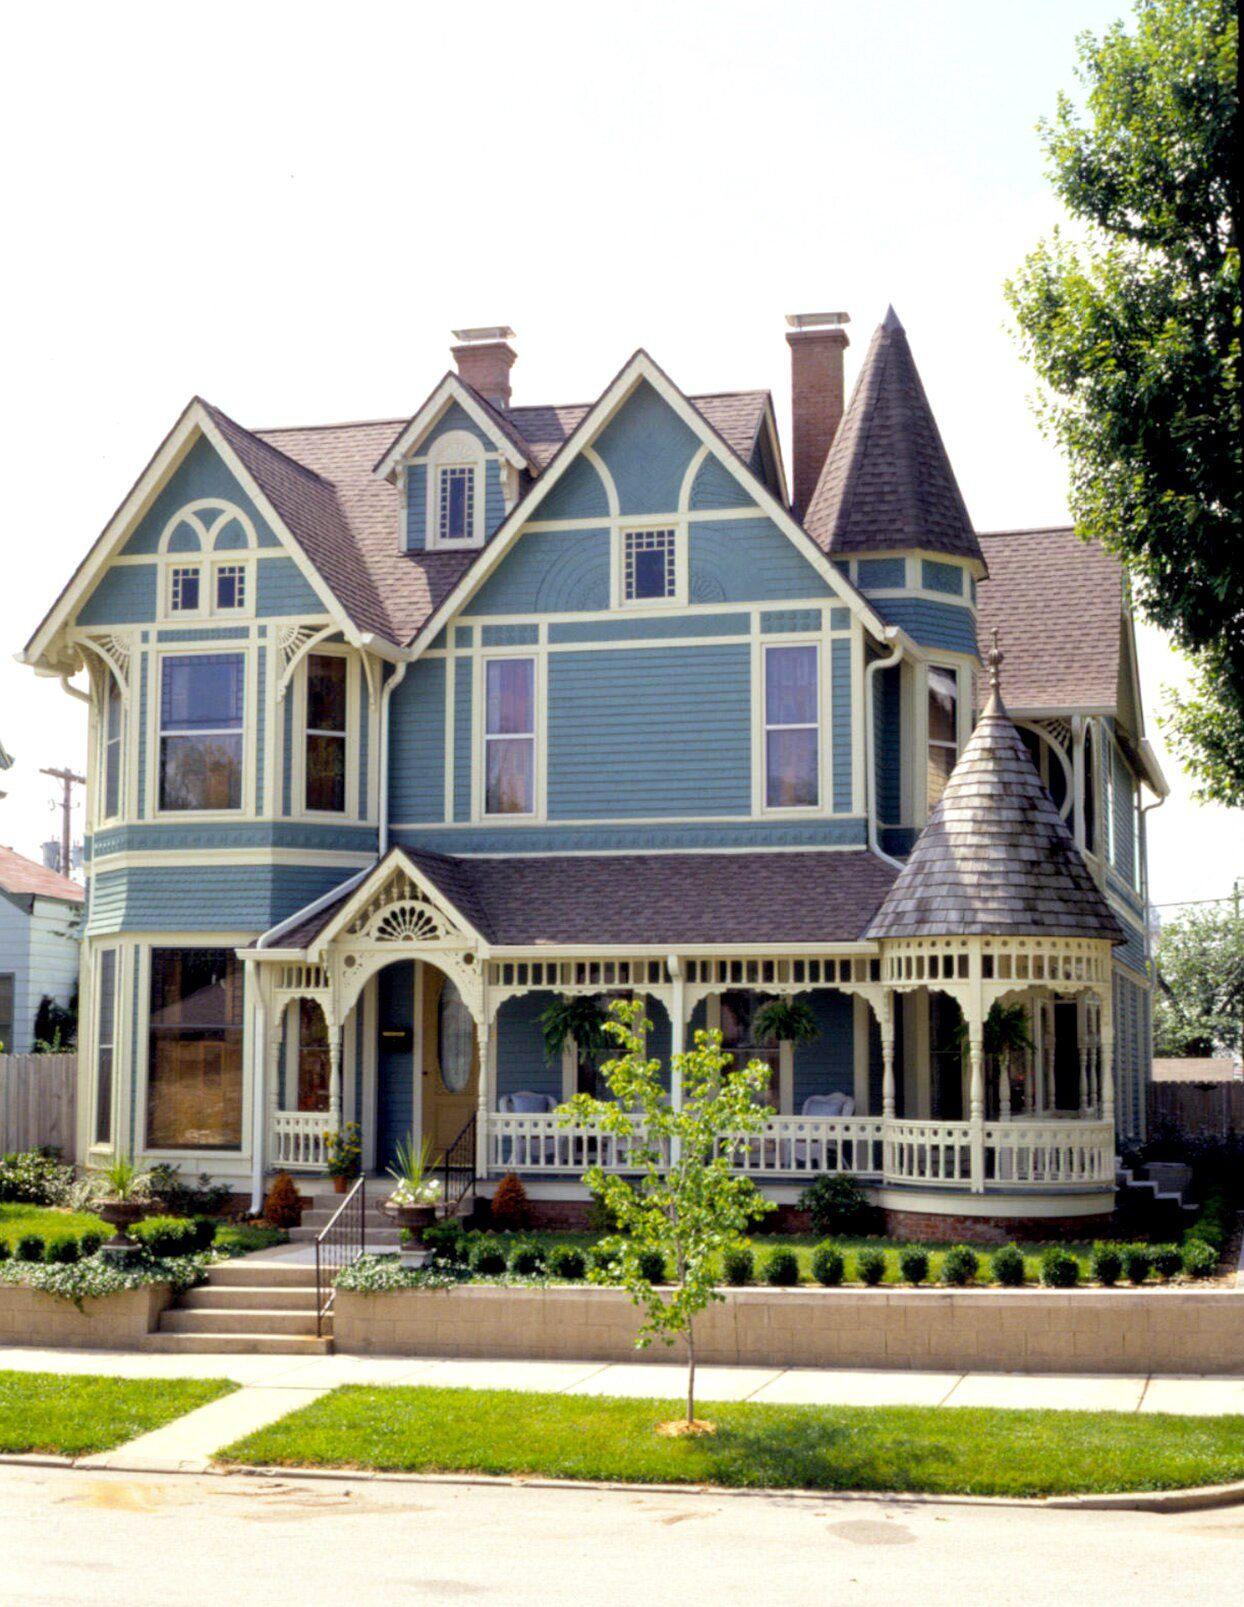 17 Victorian Style Houses With Stunning Decorative Details Victorian Homes Exterior Old Victorian Homes Victorian Homes